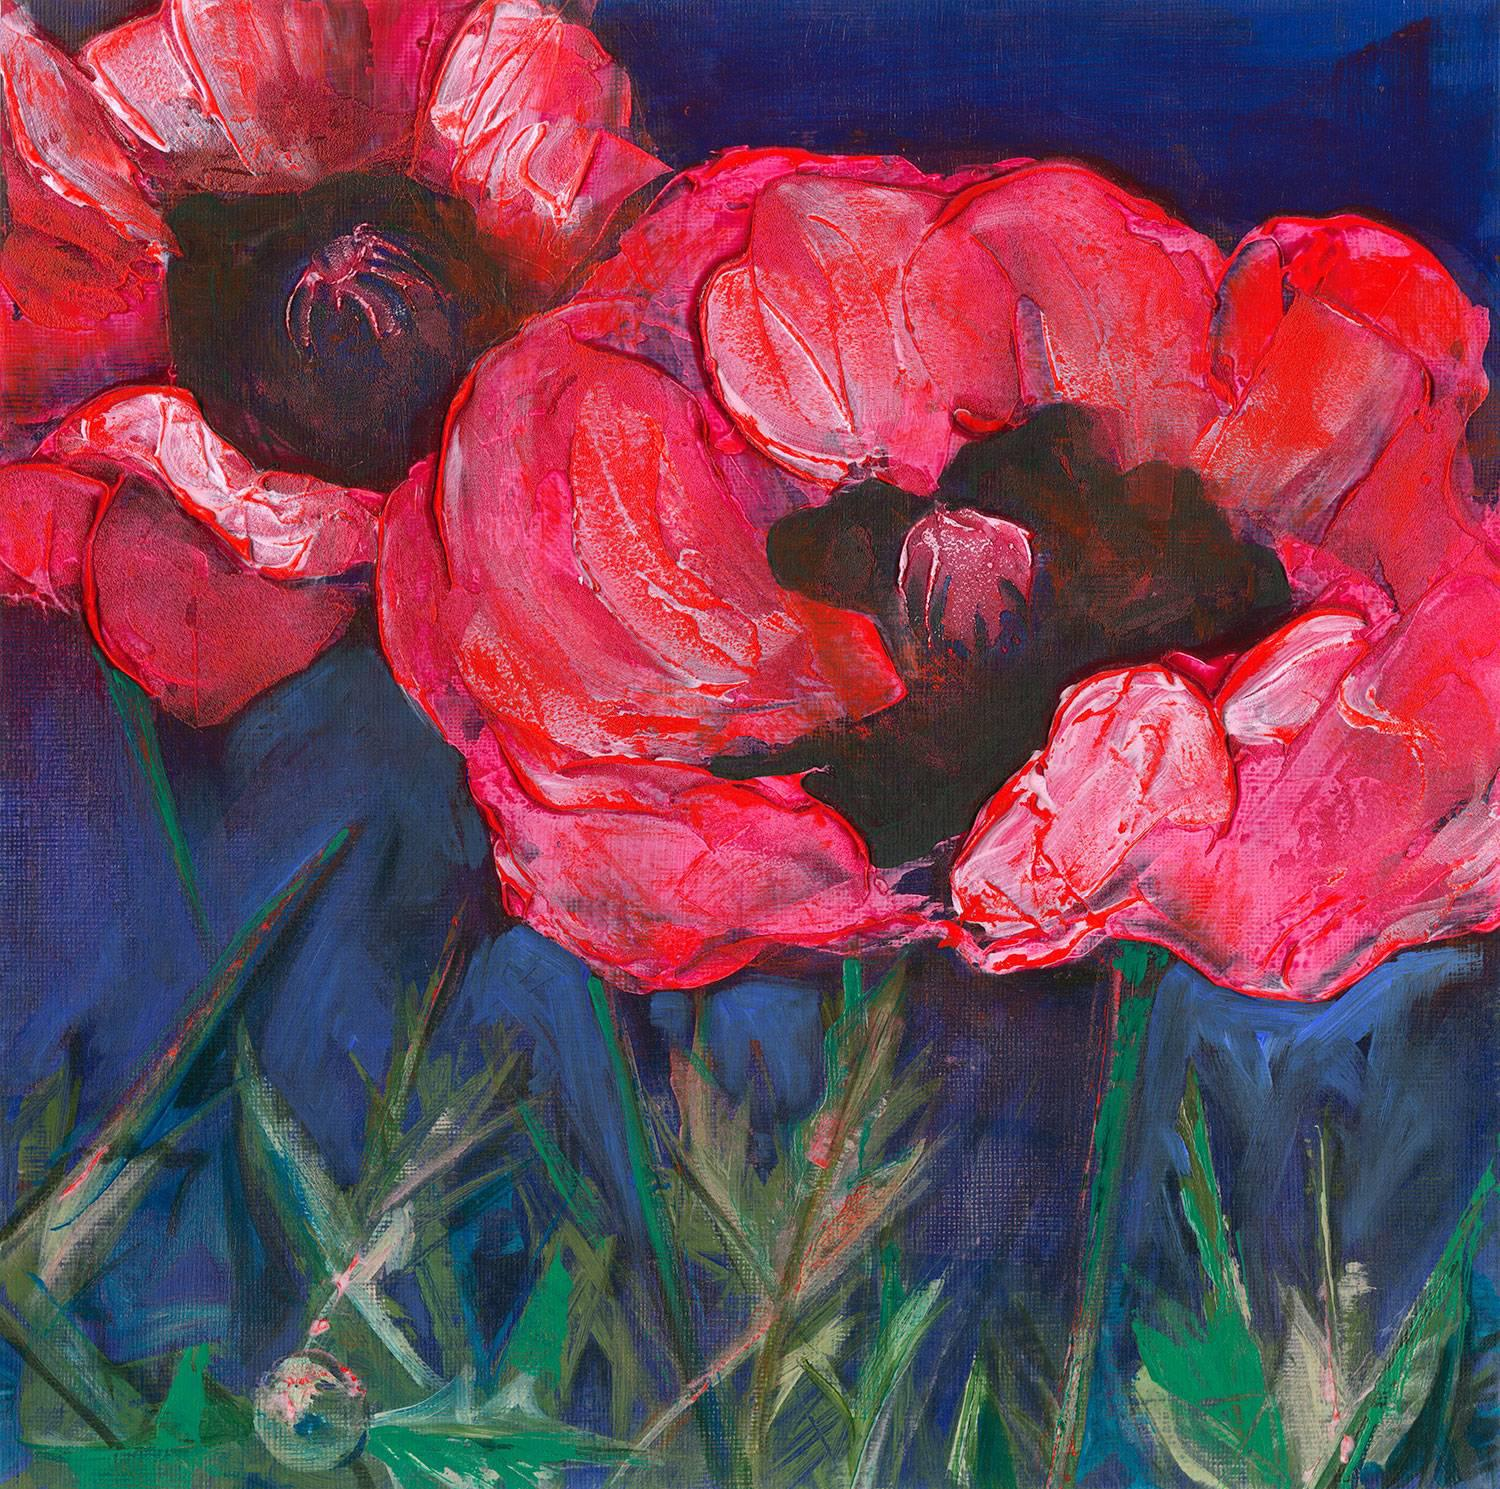 Red Poppies By Denise Souza Finney, The Featured Artist At